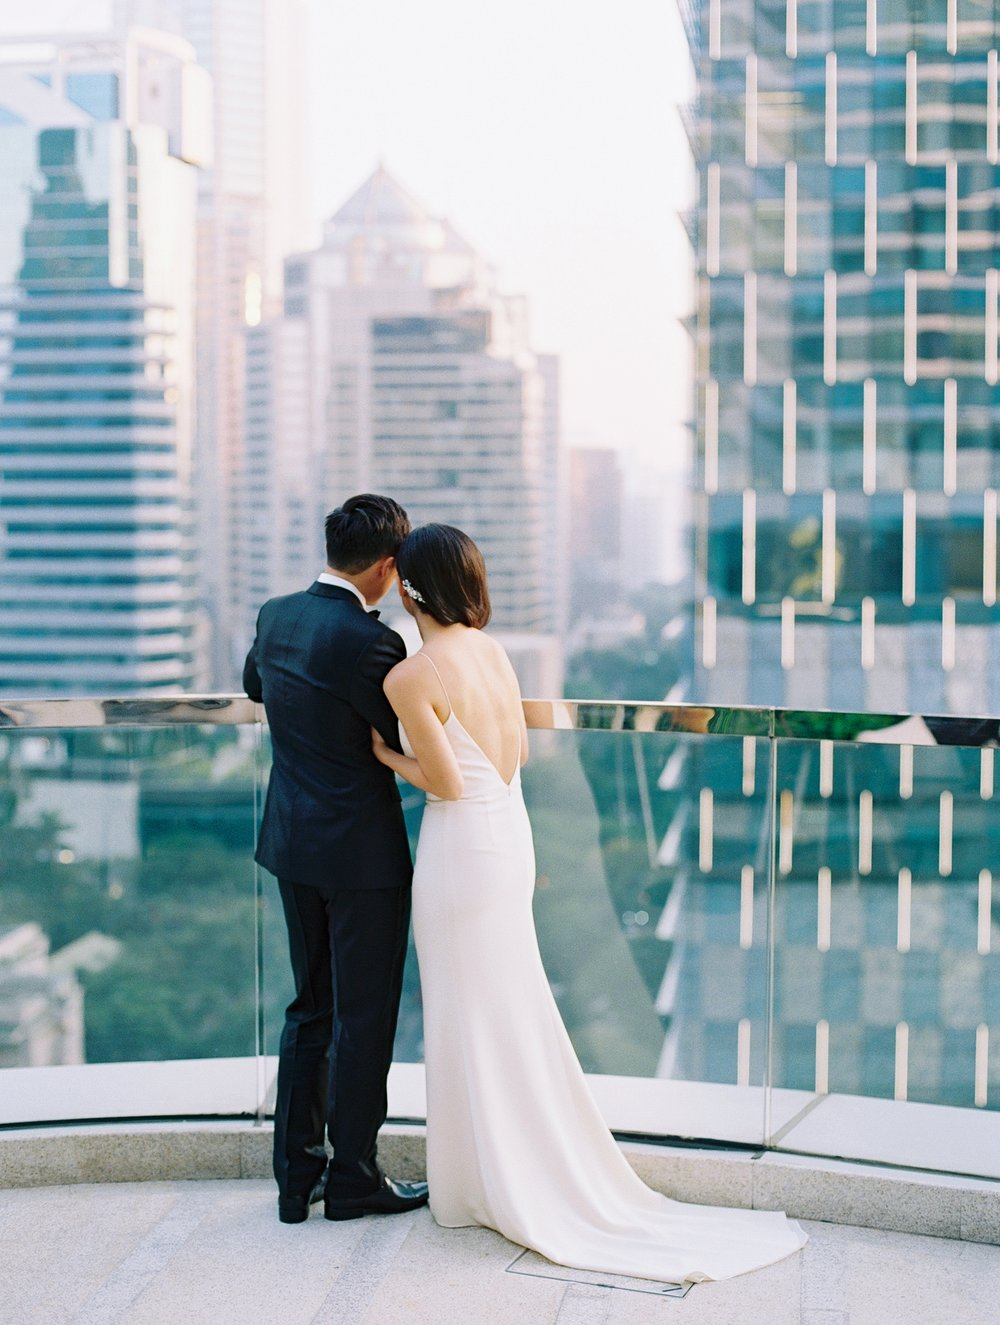 bride and groom cityscape bangkok thailand